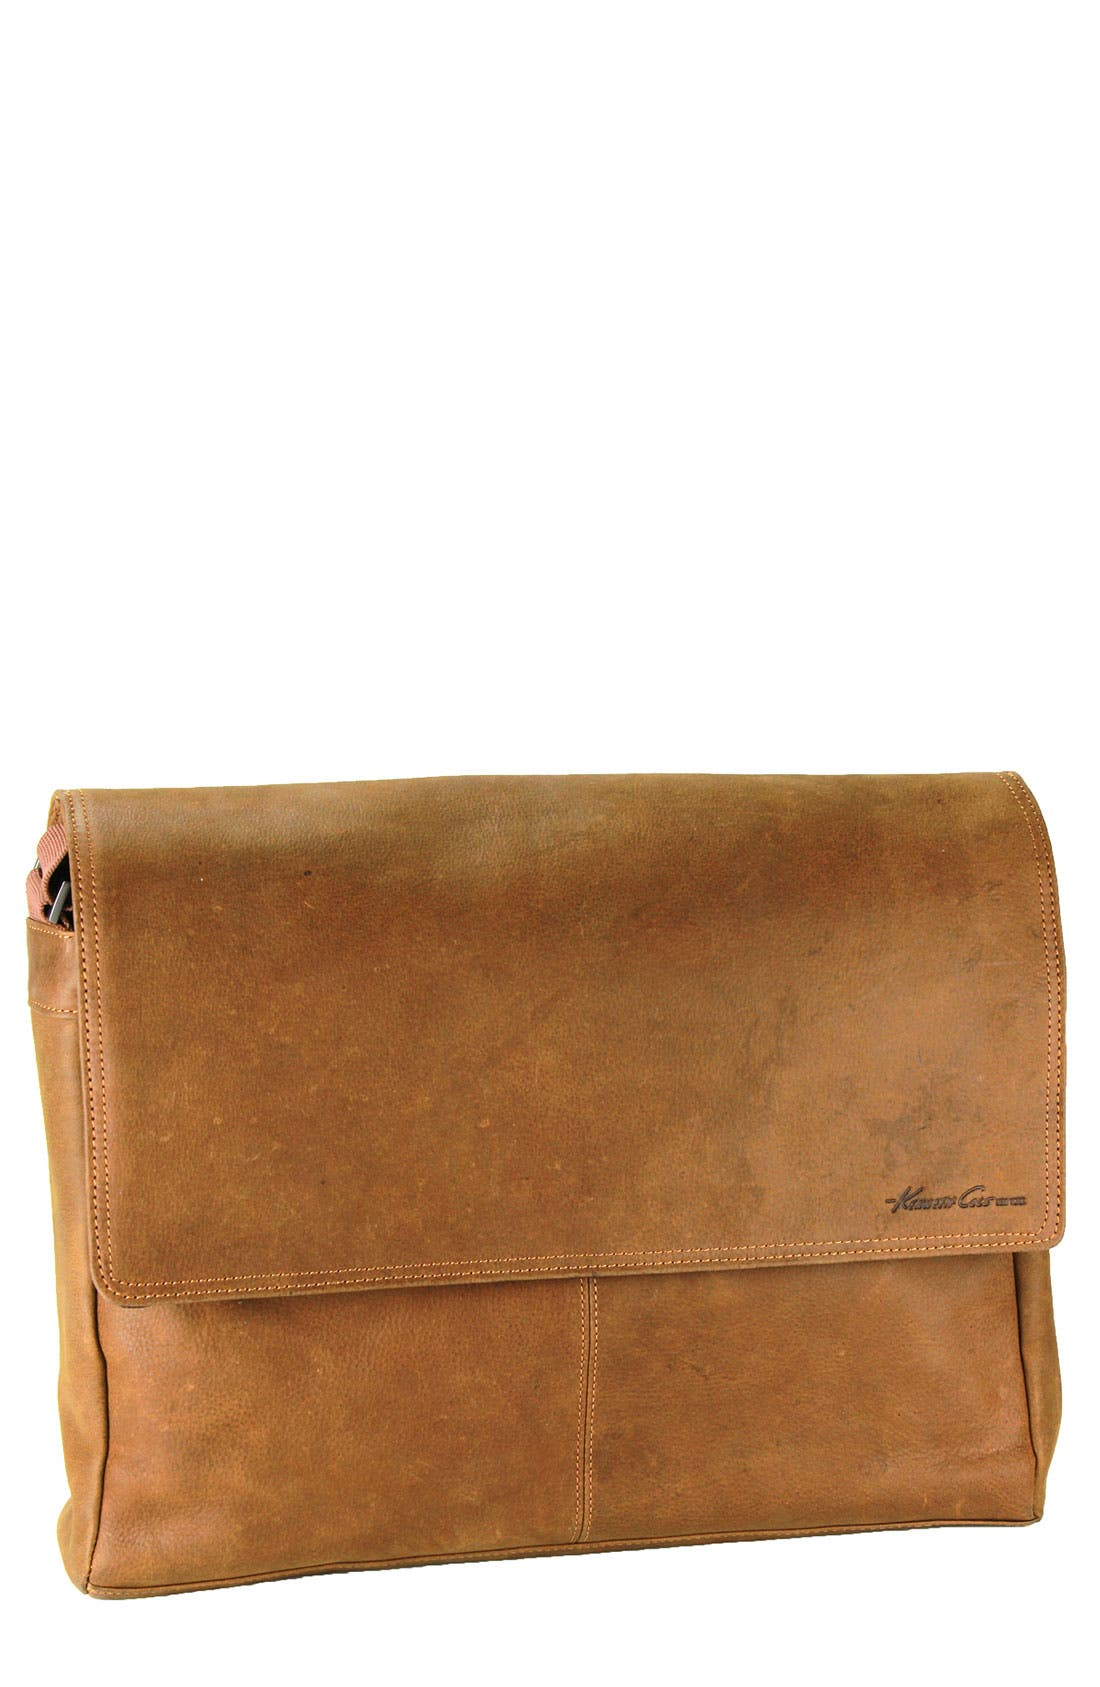 Alternate Image 1 Selected - Kenneth Cole New York 'Thunder' Leather Messenger Bag